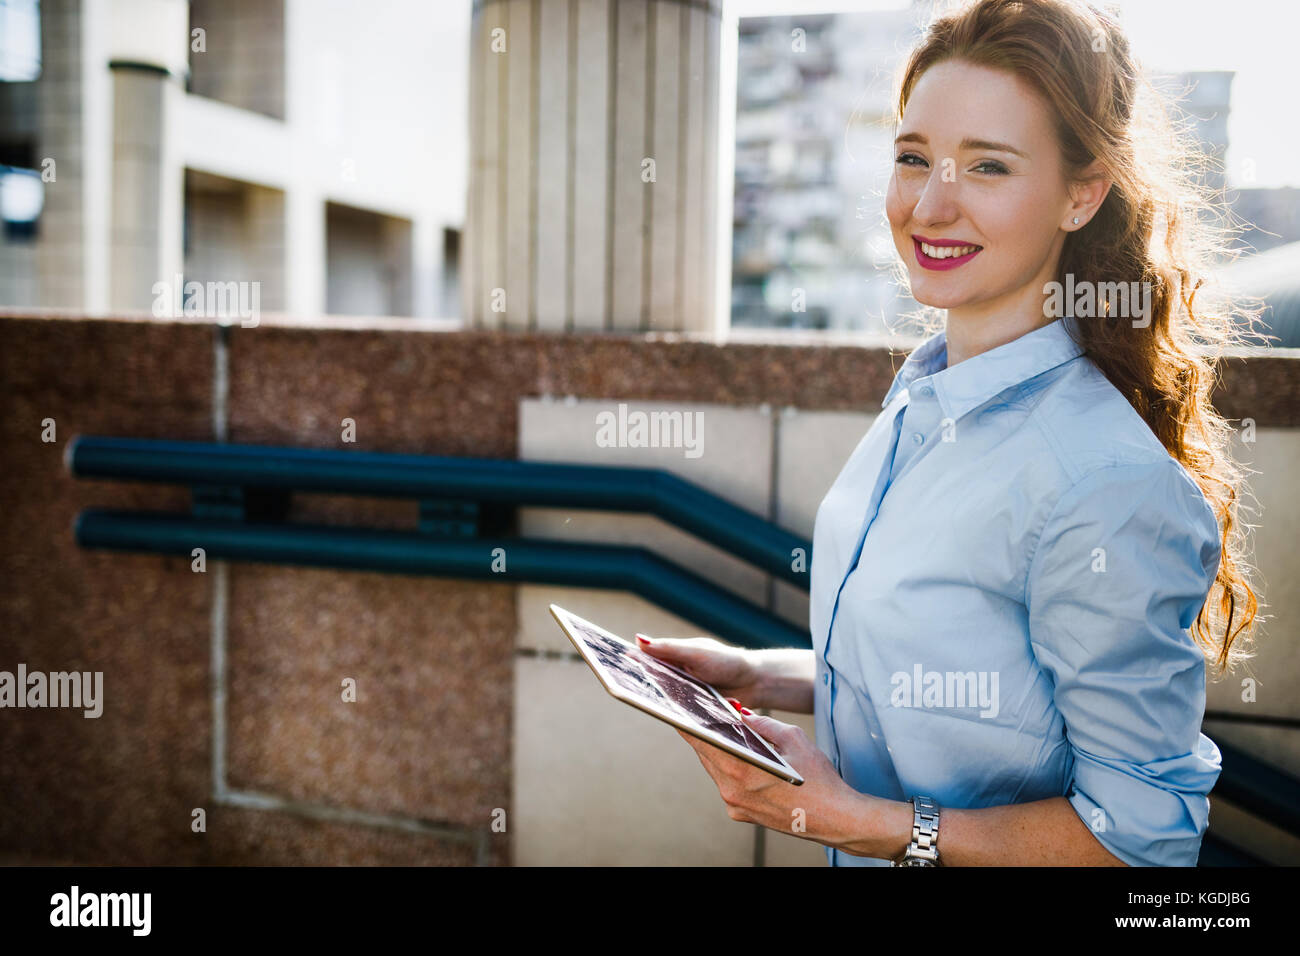 Portrait of businesswoman walking and holding tablet - Stock Image